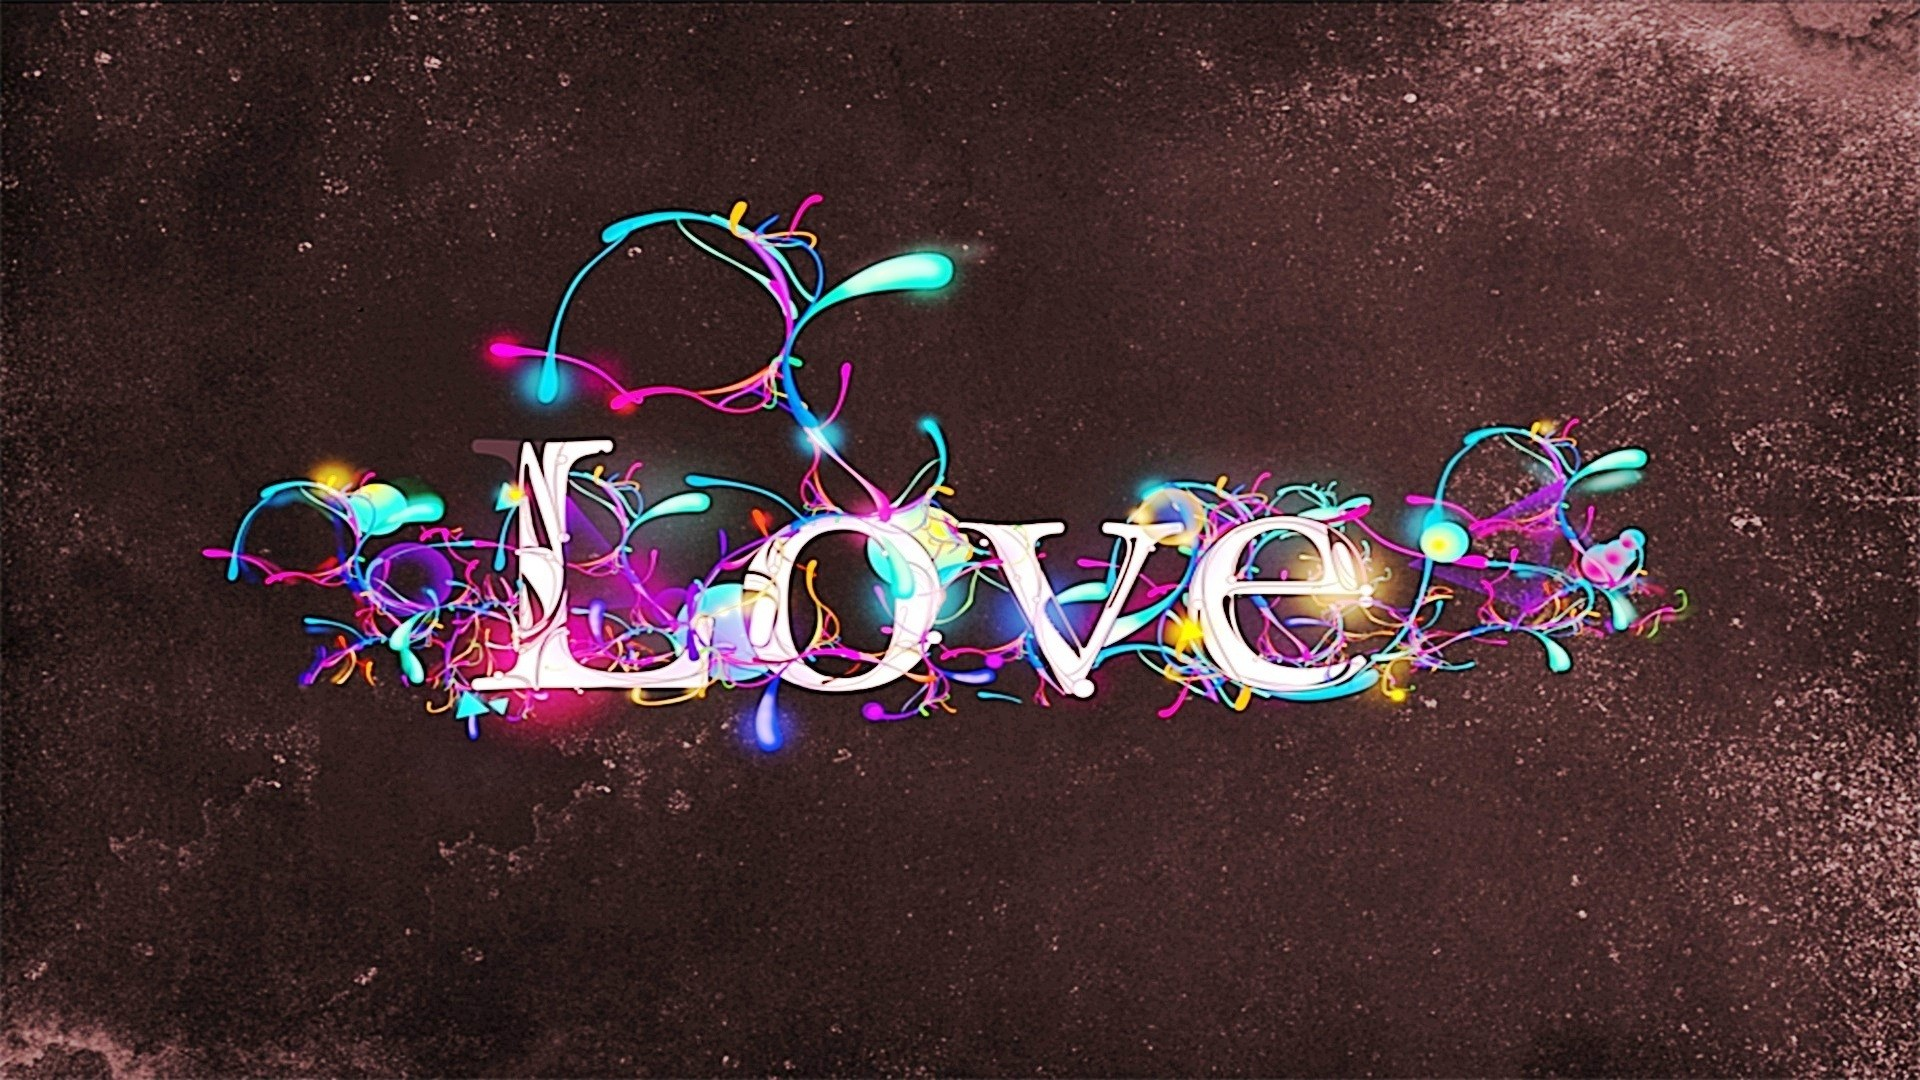 1920x1080 Love desktop background new wallpapers - New hd .